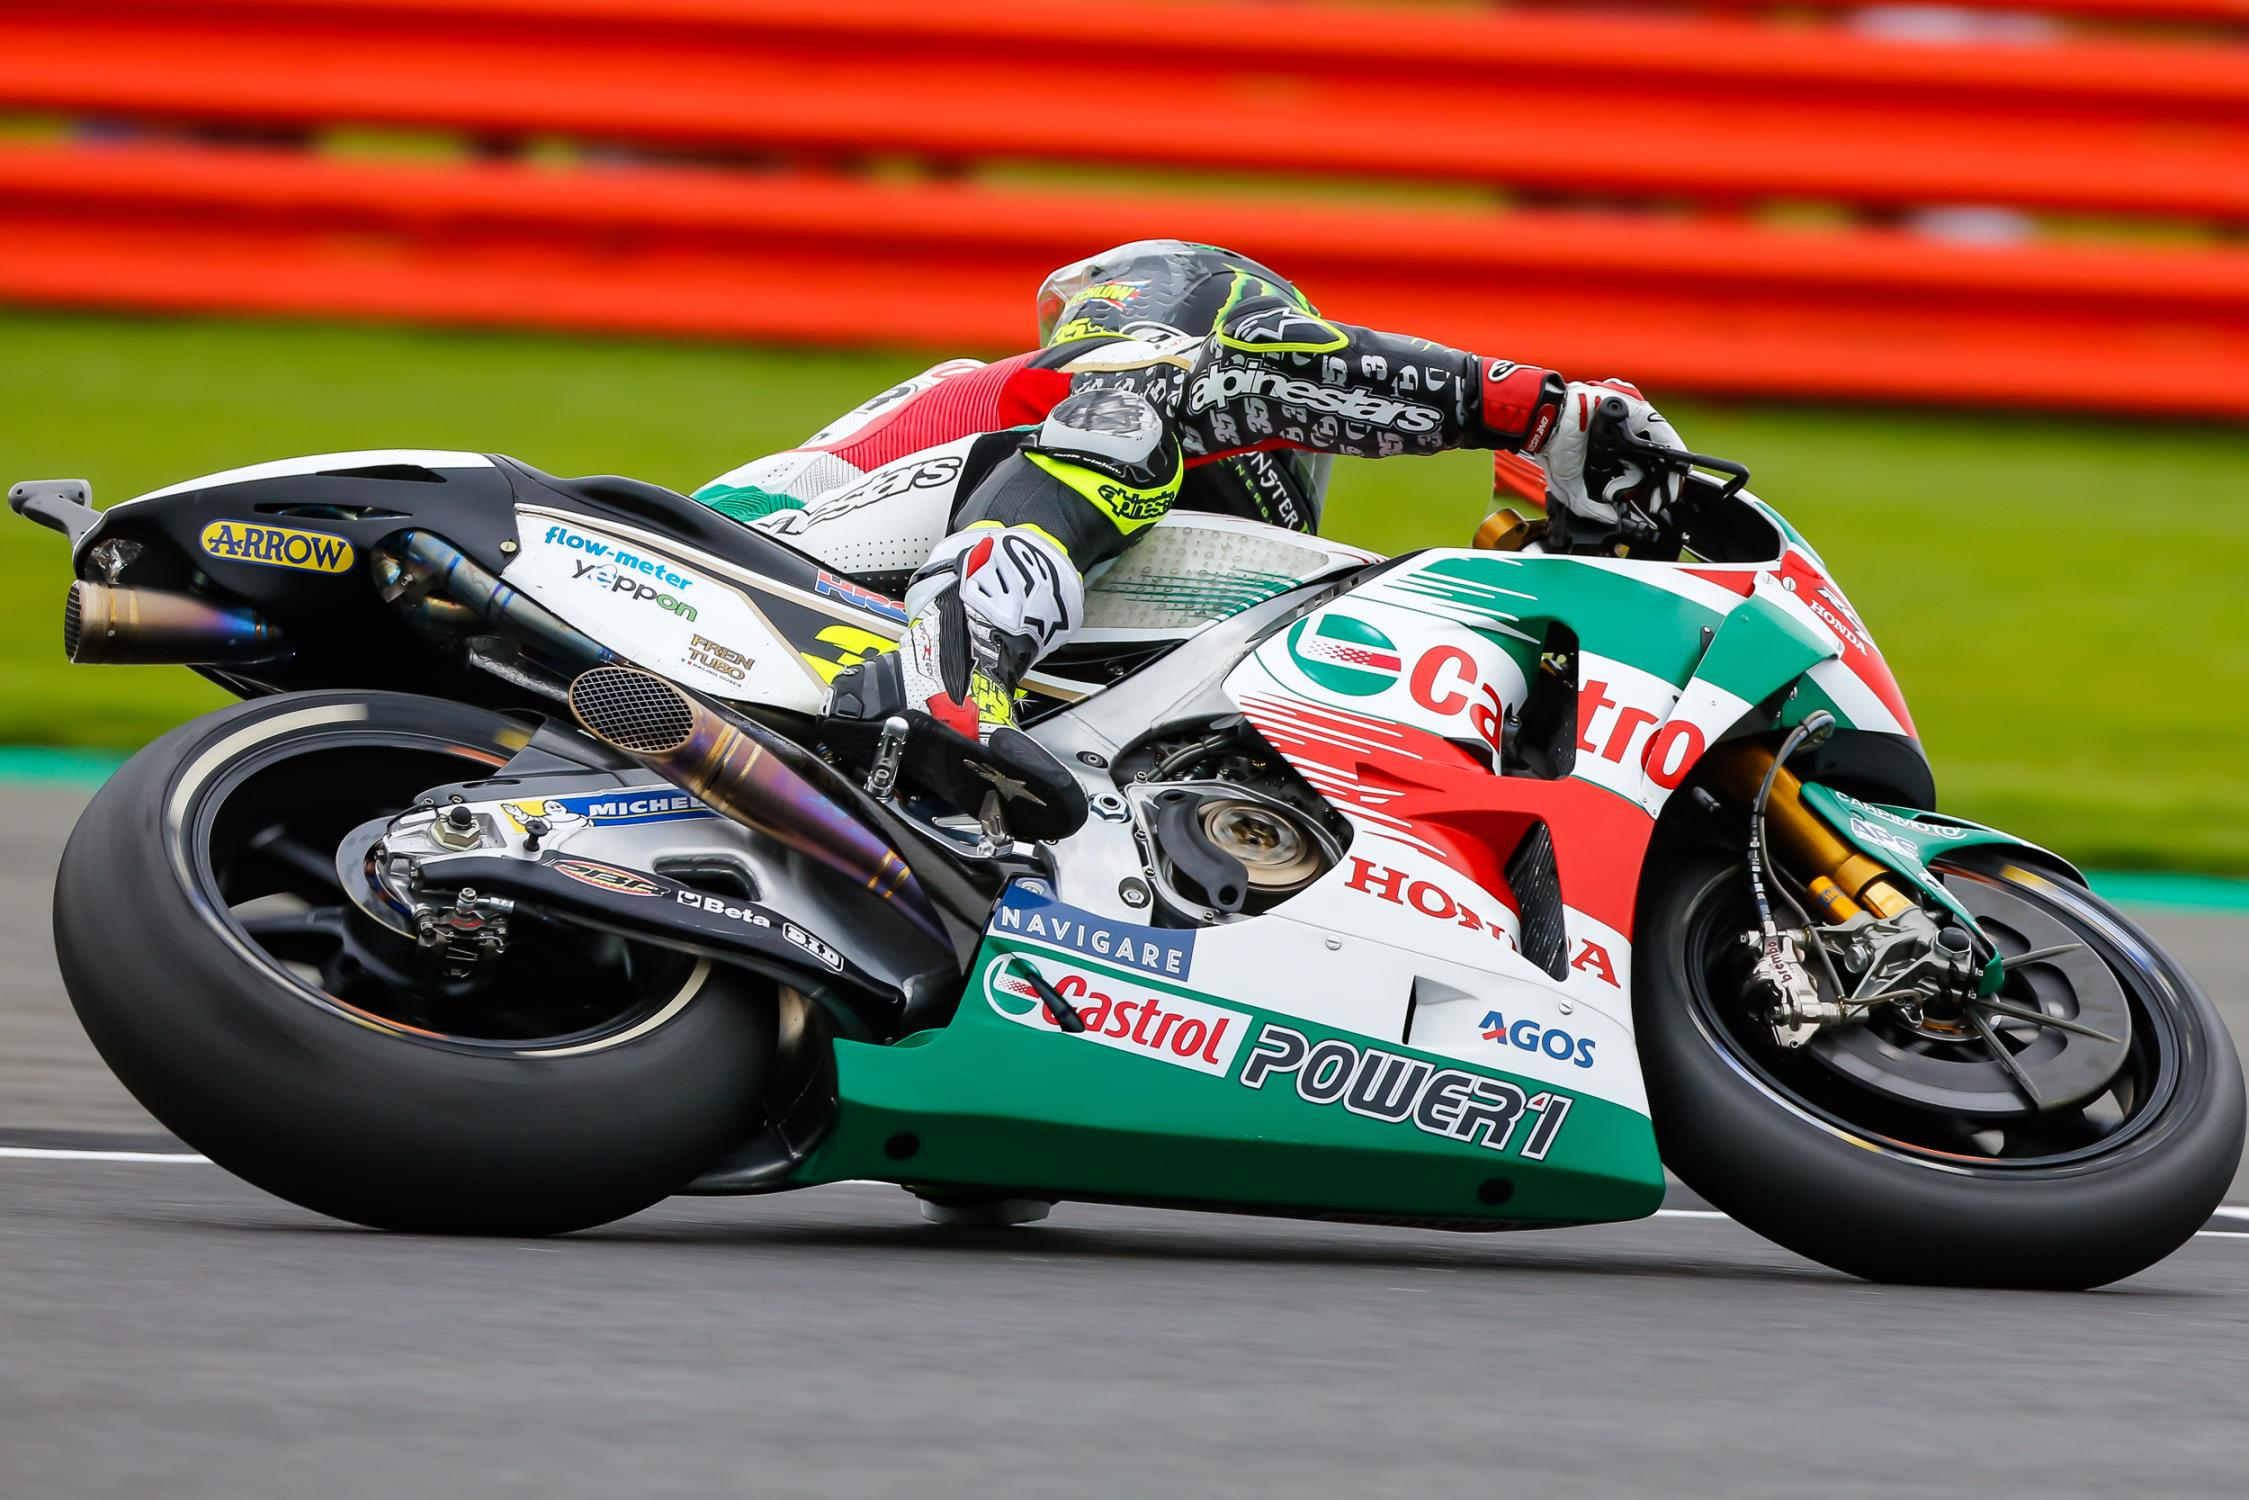 35-cal-crutchlow-eng_gp_5665.gallery_full_top_fullscreen.jpg